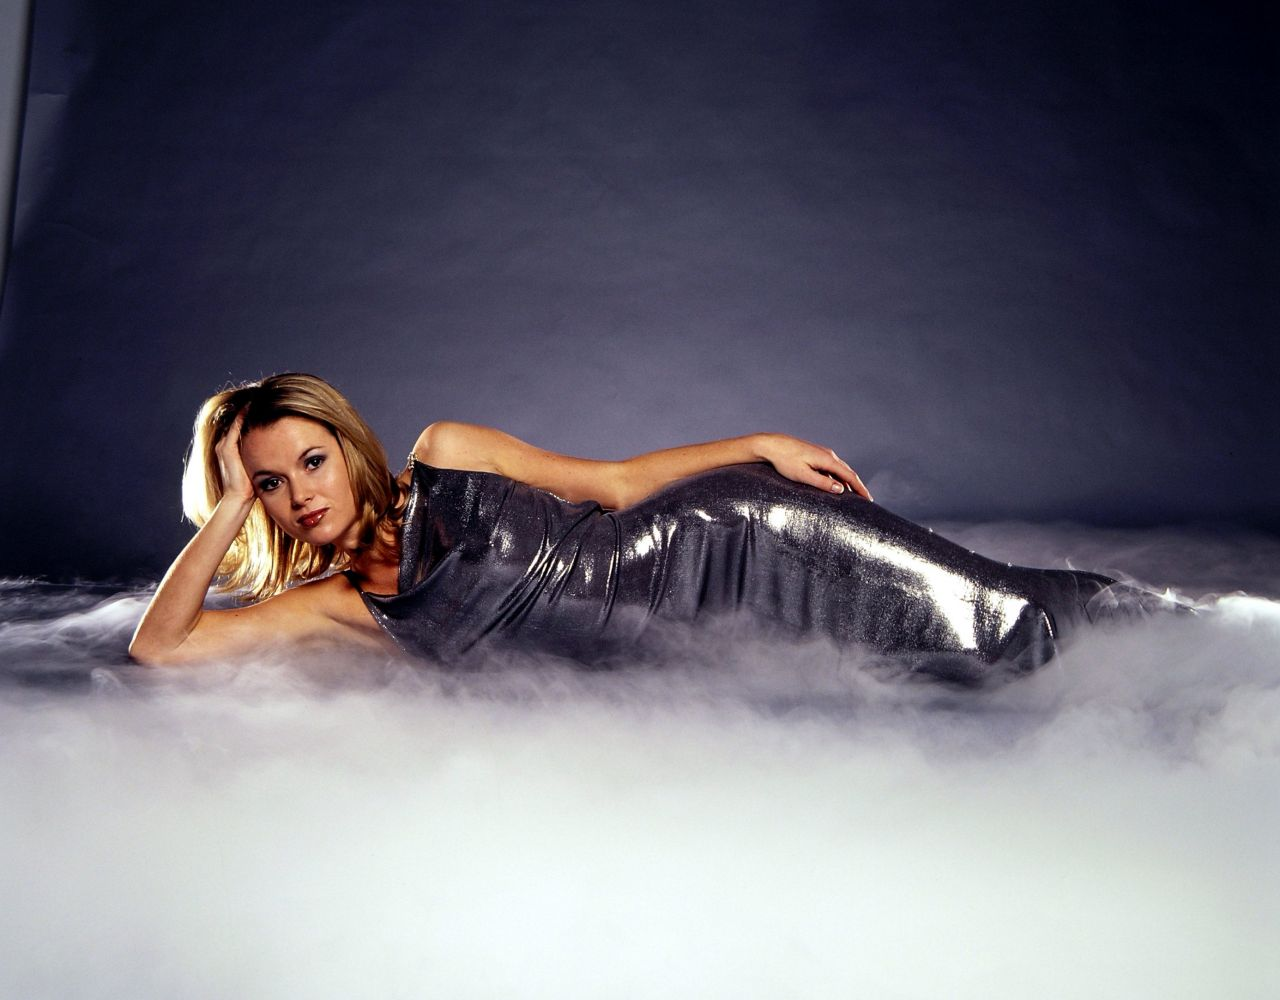 amanda holden wallpaper palm - photo #17